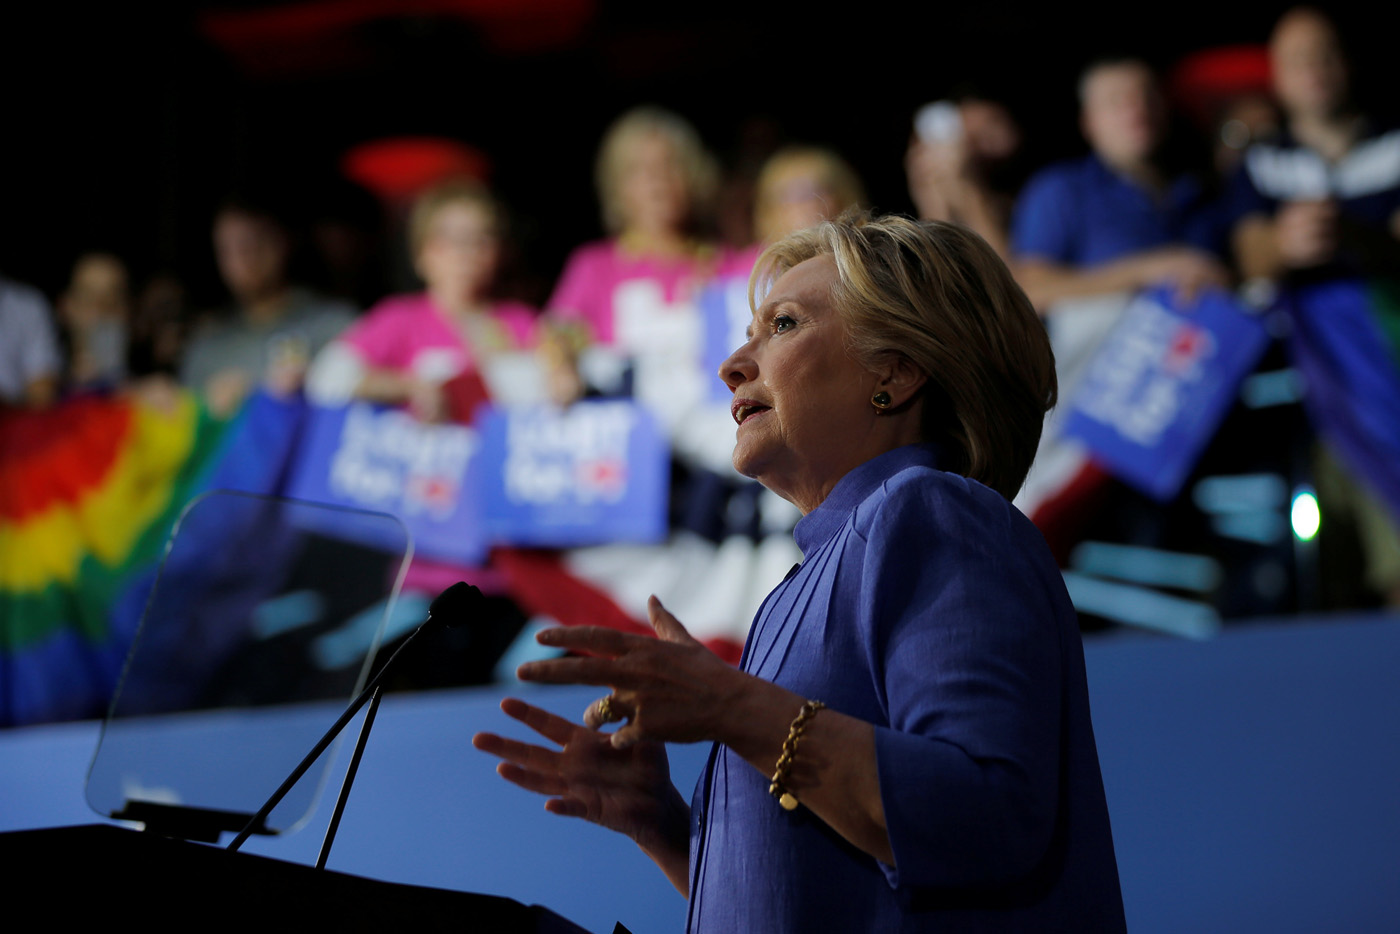 Clinton in Coral Gables for Shalala fundraising event amid